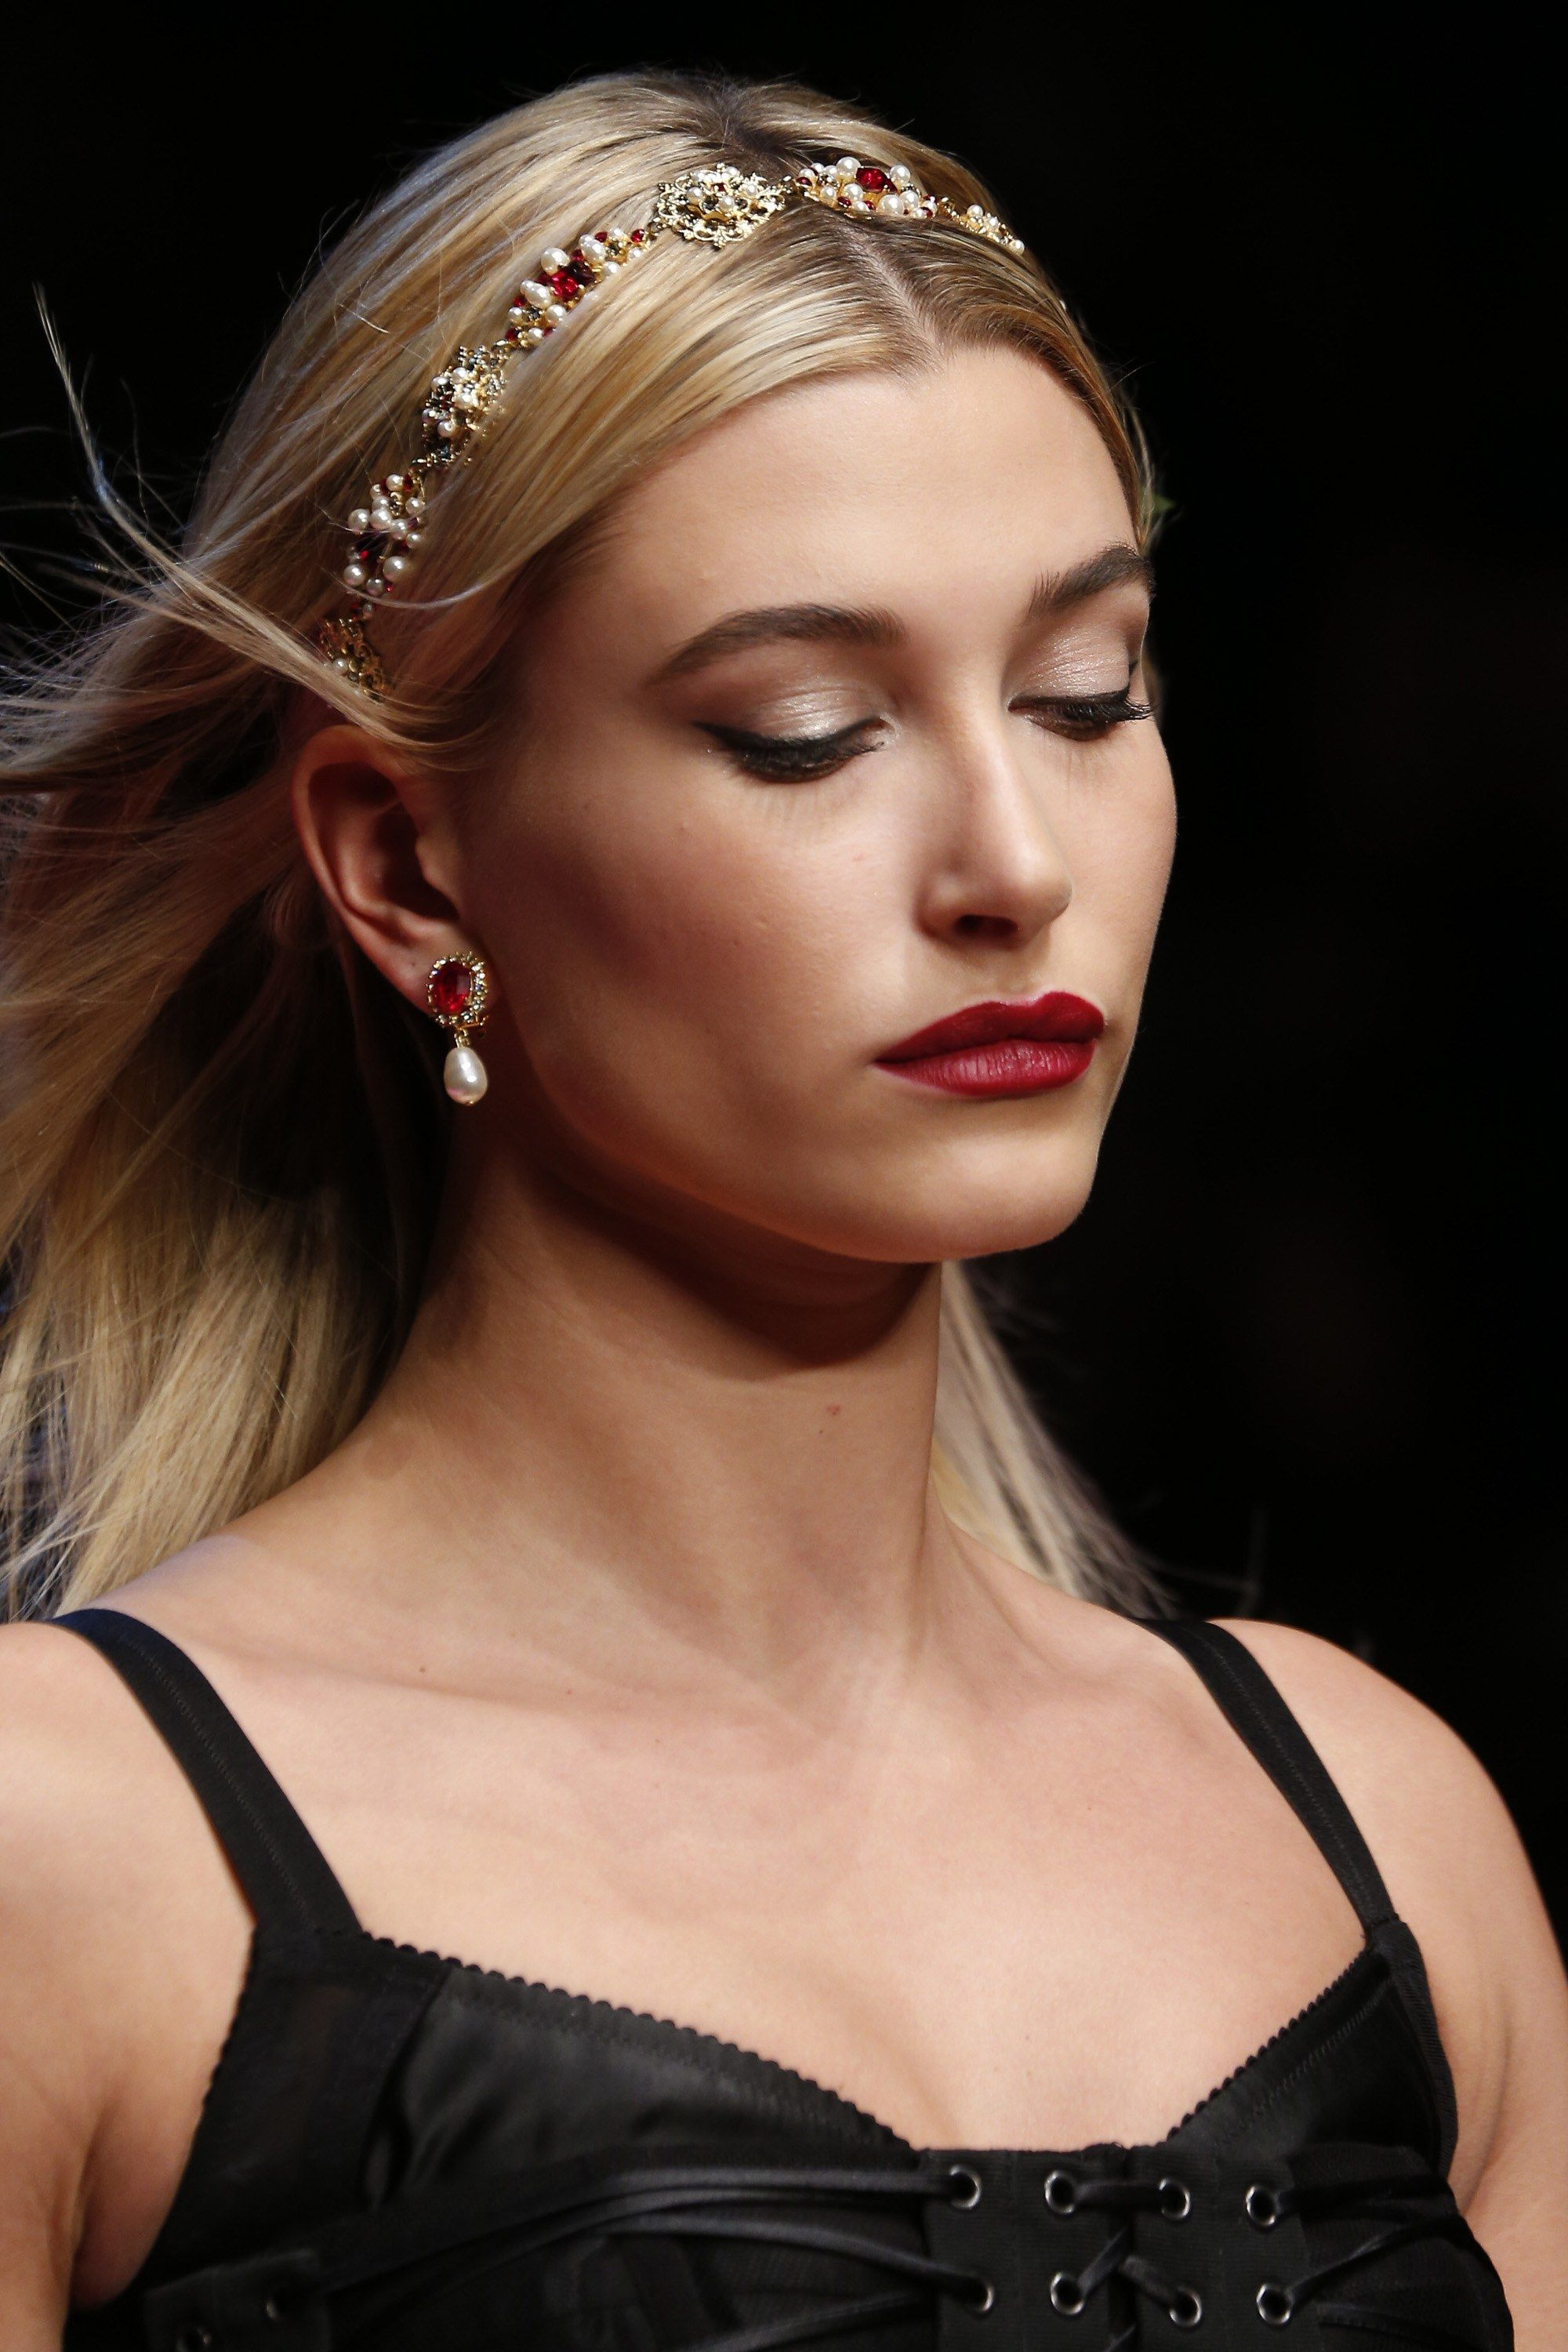 2019 year look- Summer spring hair accessory trends